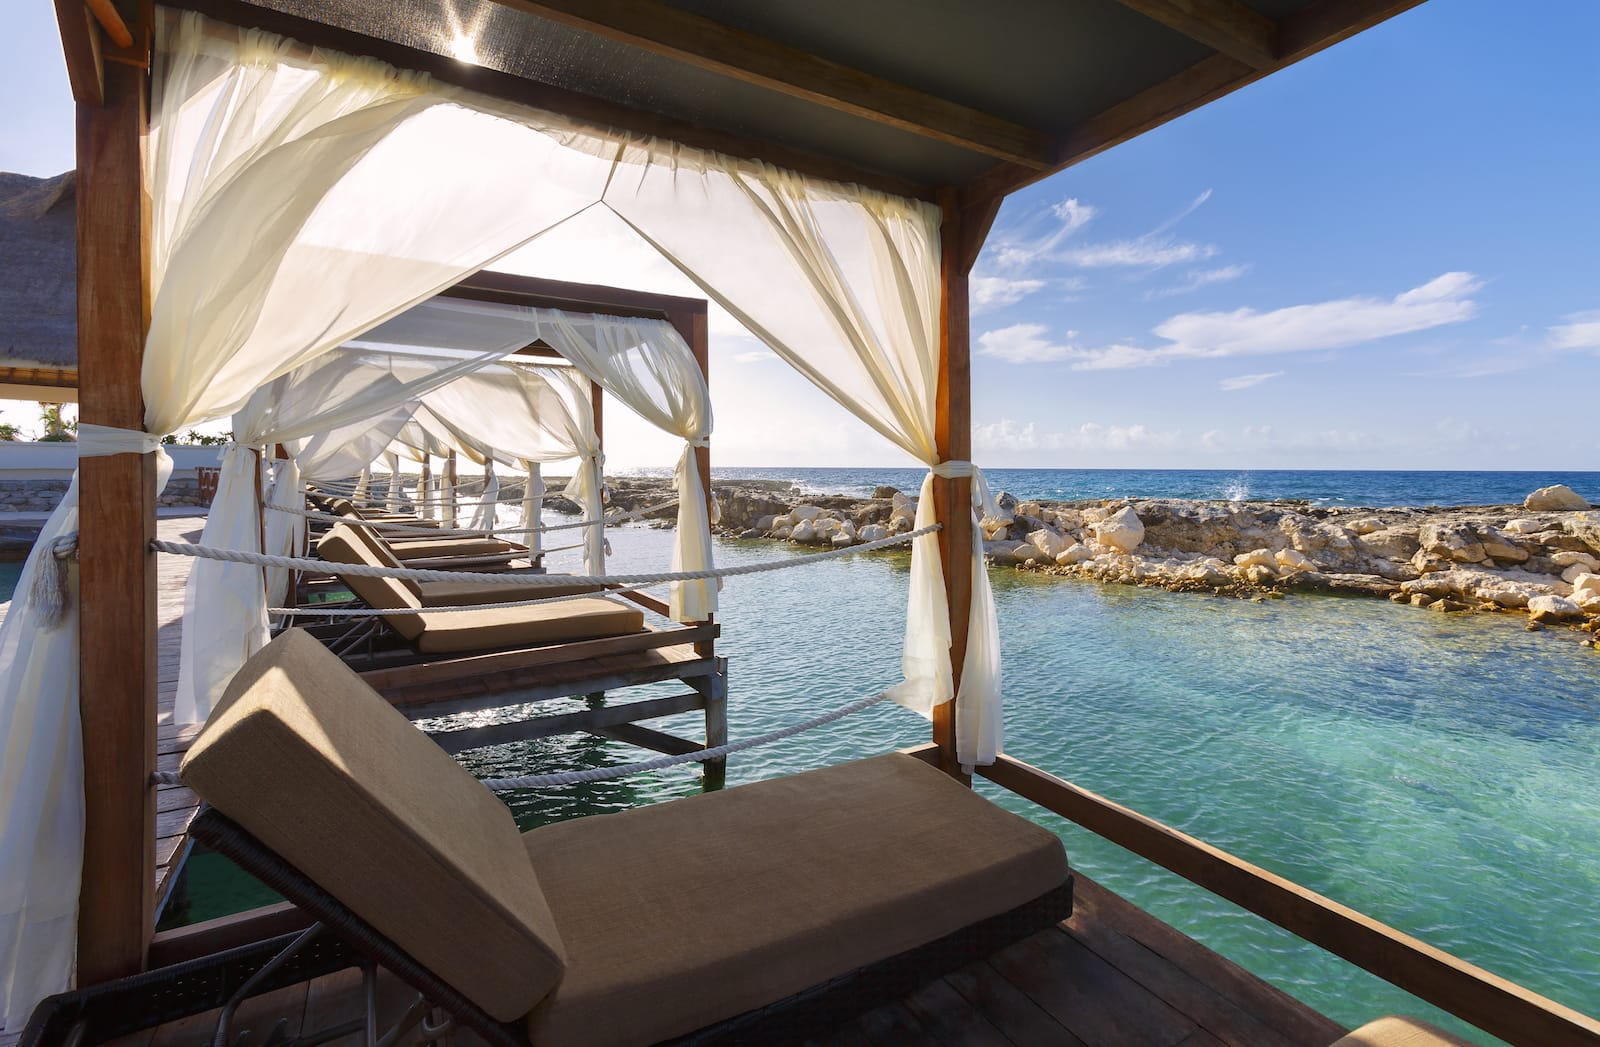 Heaven Bali Beds over water adventure all inclusive resort mexico romantic vacation